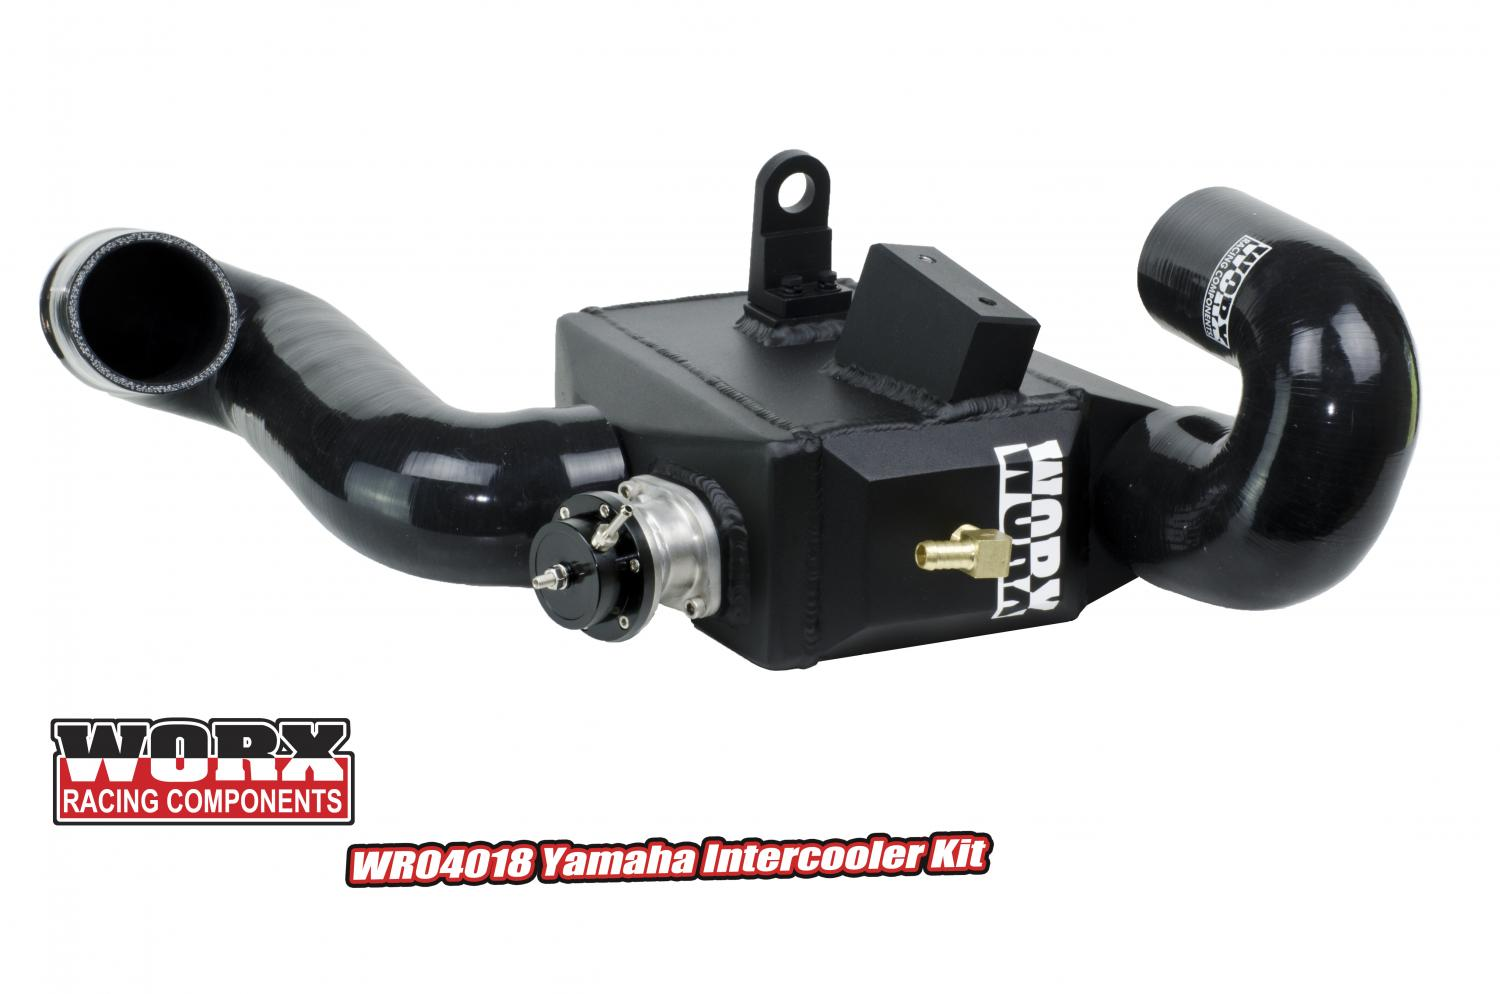 WORX Yamaha 1.8L Intercooler Kit